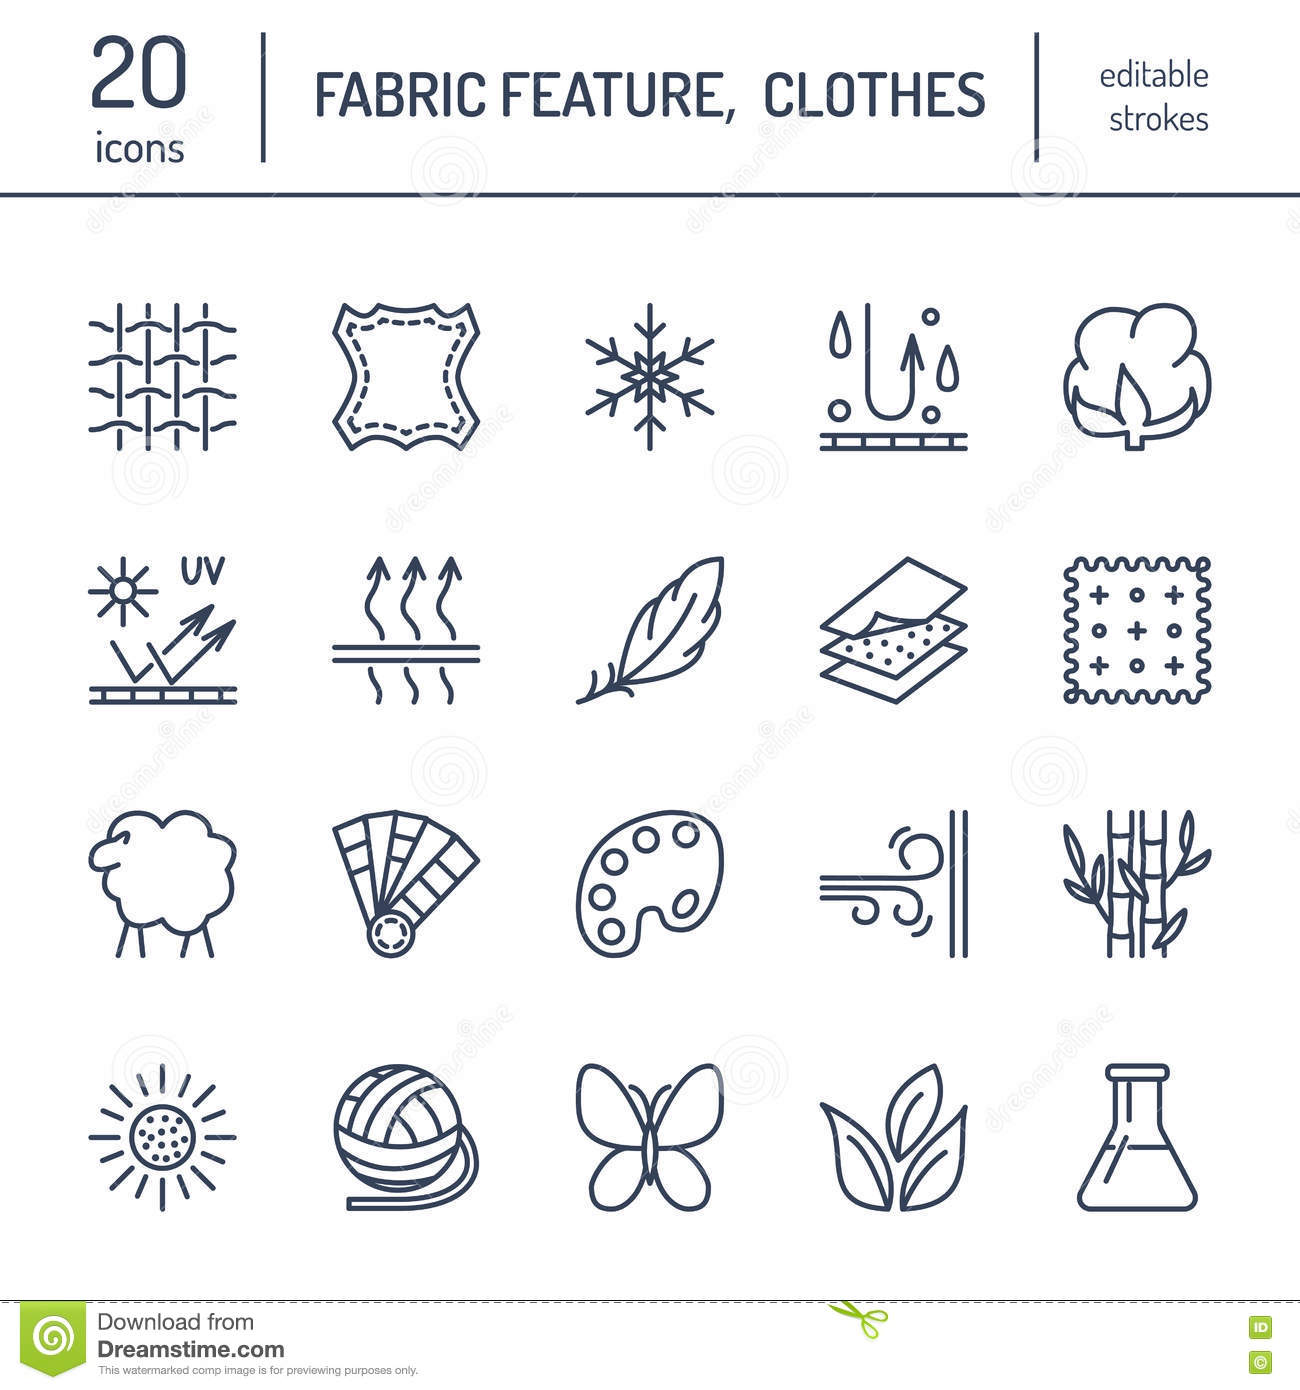 Wool stock illustrations 33516 wool stock illustrations vector line icons of fabric feature garments property symbols elements cotton wool biocorpaavc Gallery